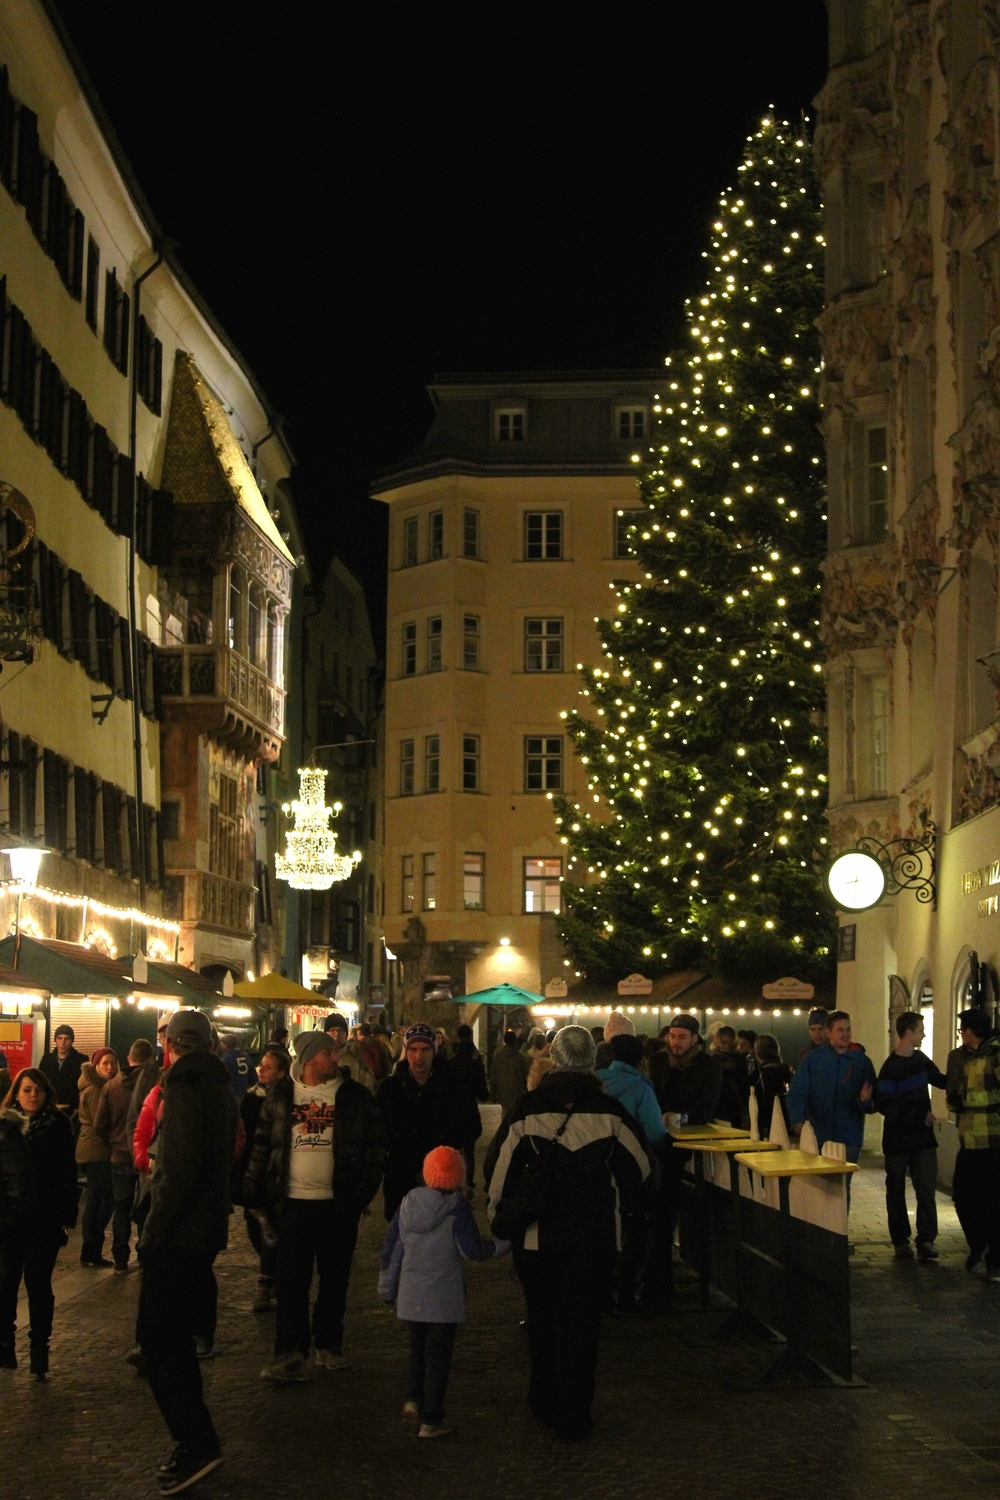 Innsbruck-Christkindlmarkt-Christmas-Tree-LaurenSchwaiger-Travel.jpg